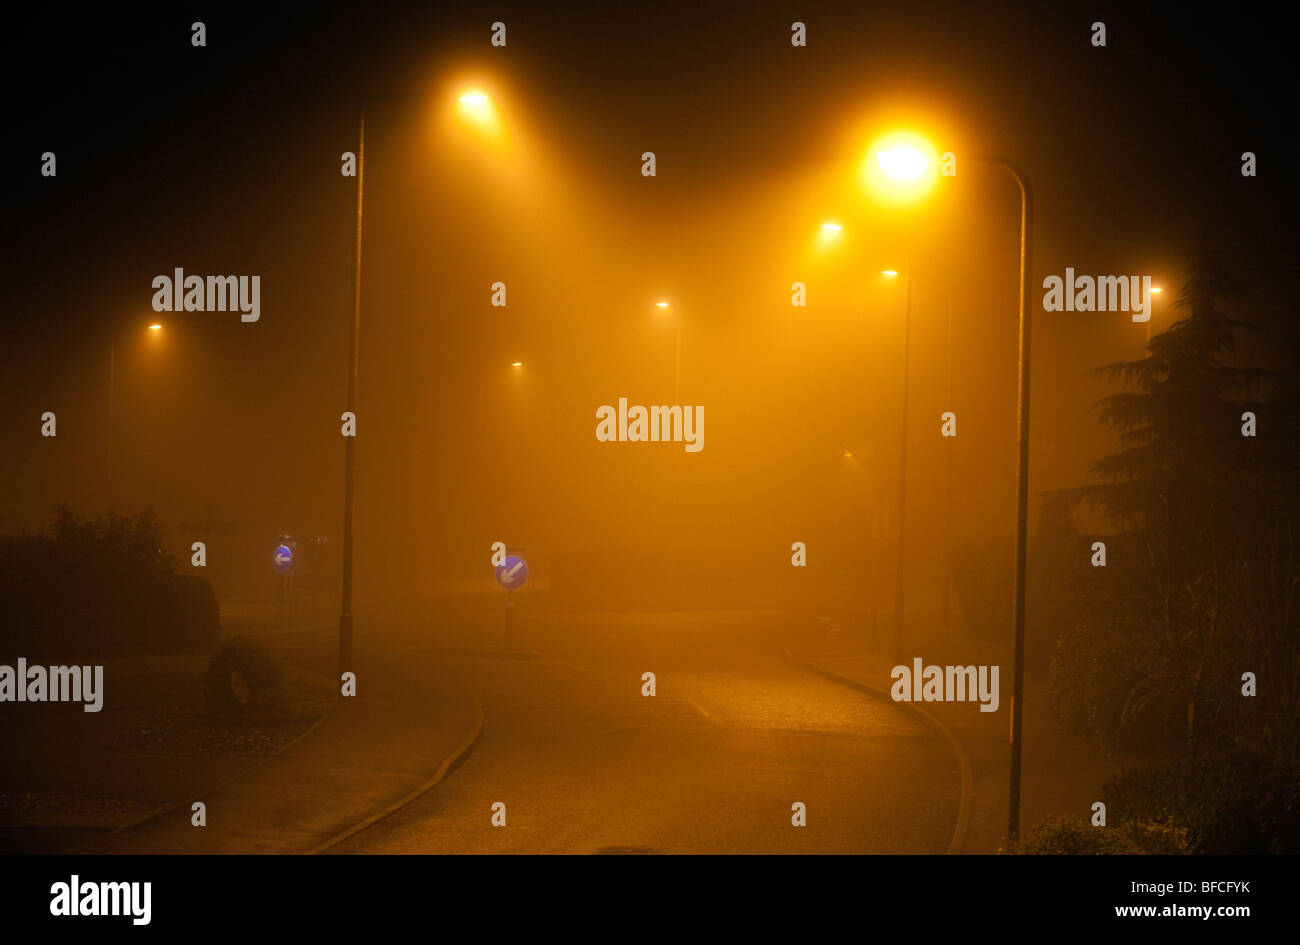 A foggy road with street lighting at night in Redditch, Worcestershire, UK - Stock Image